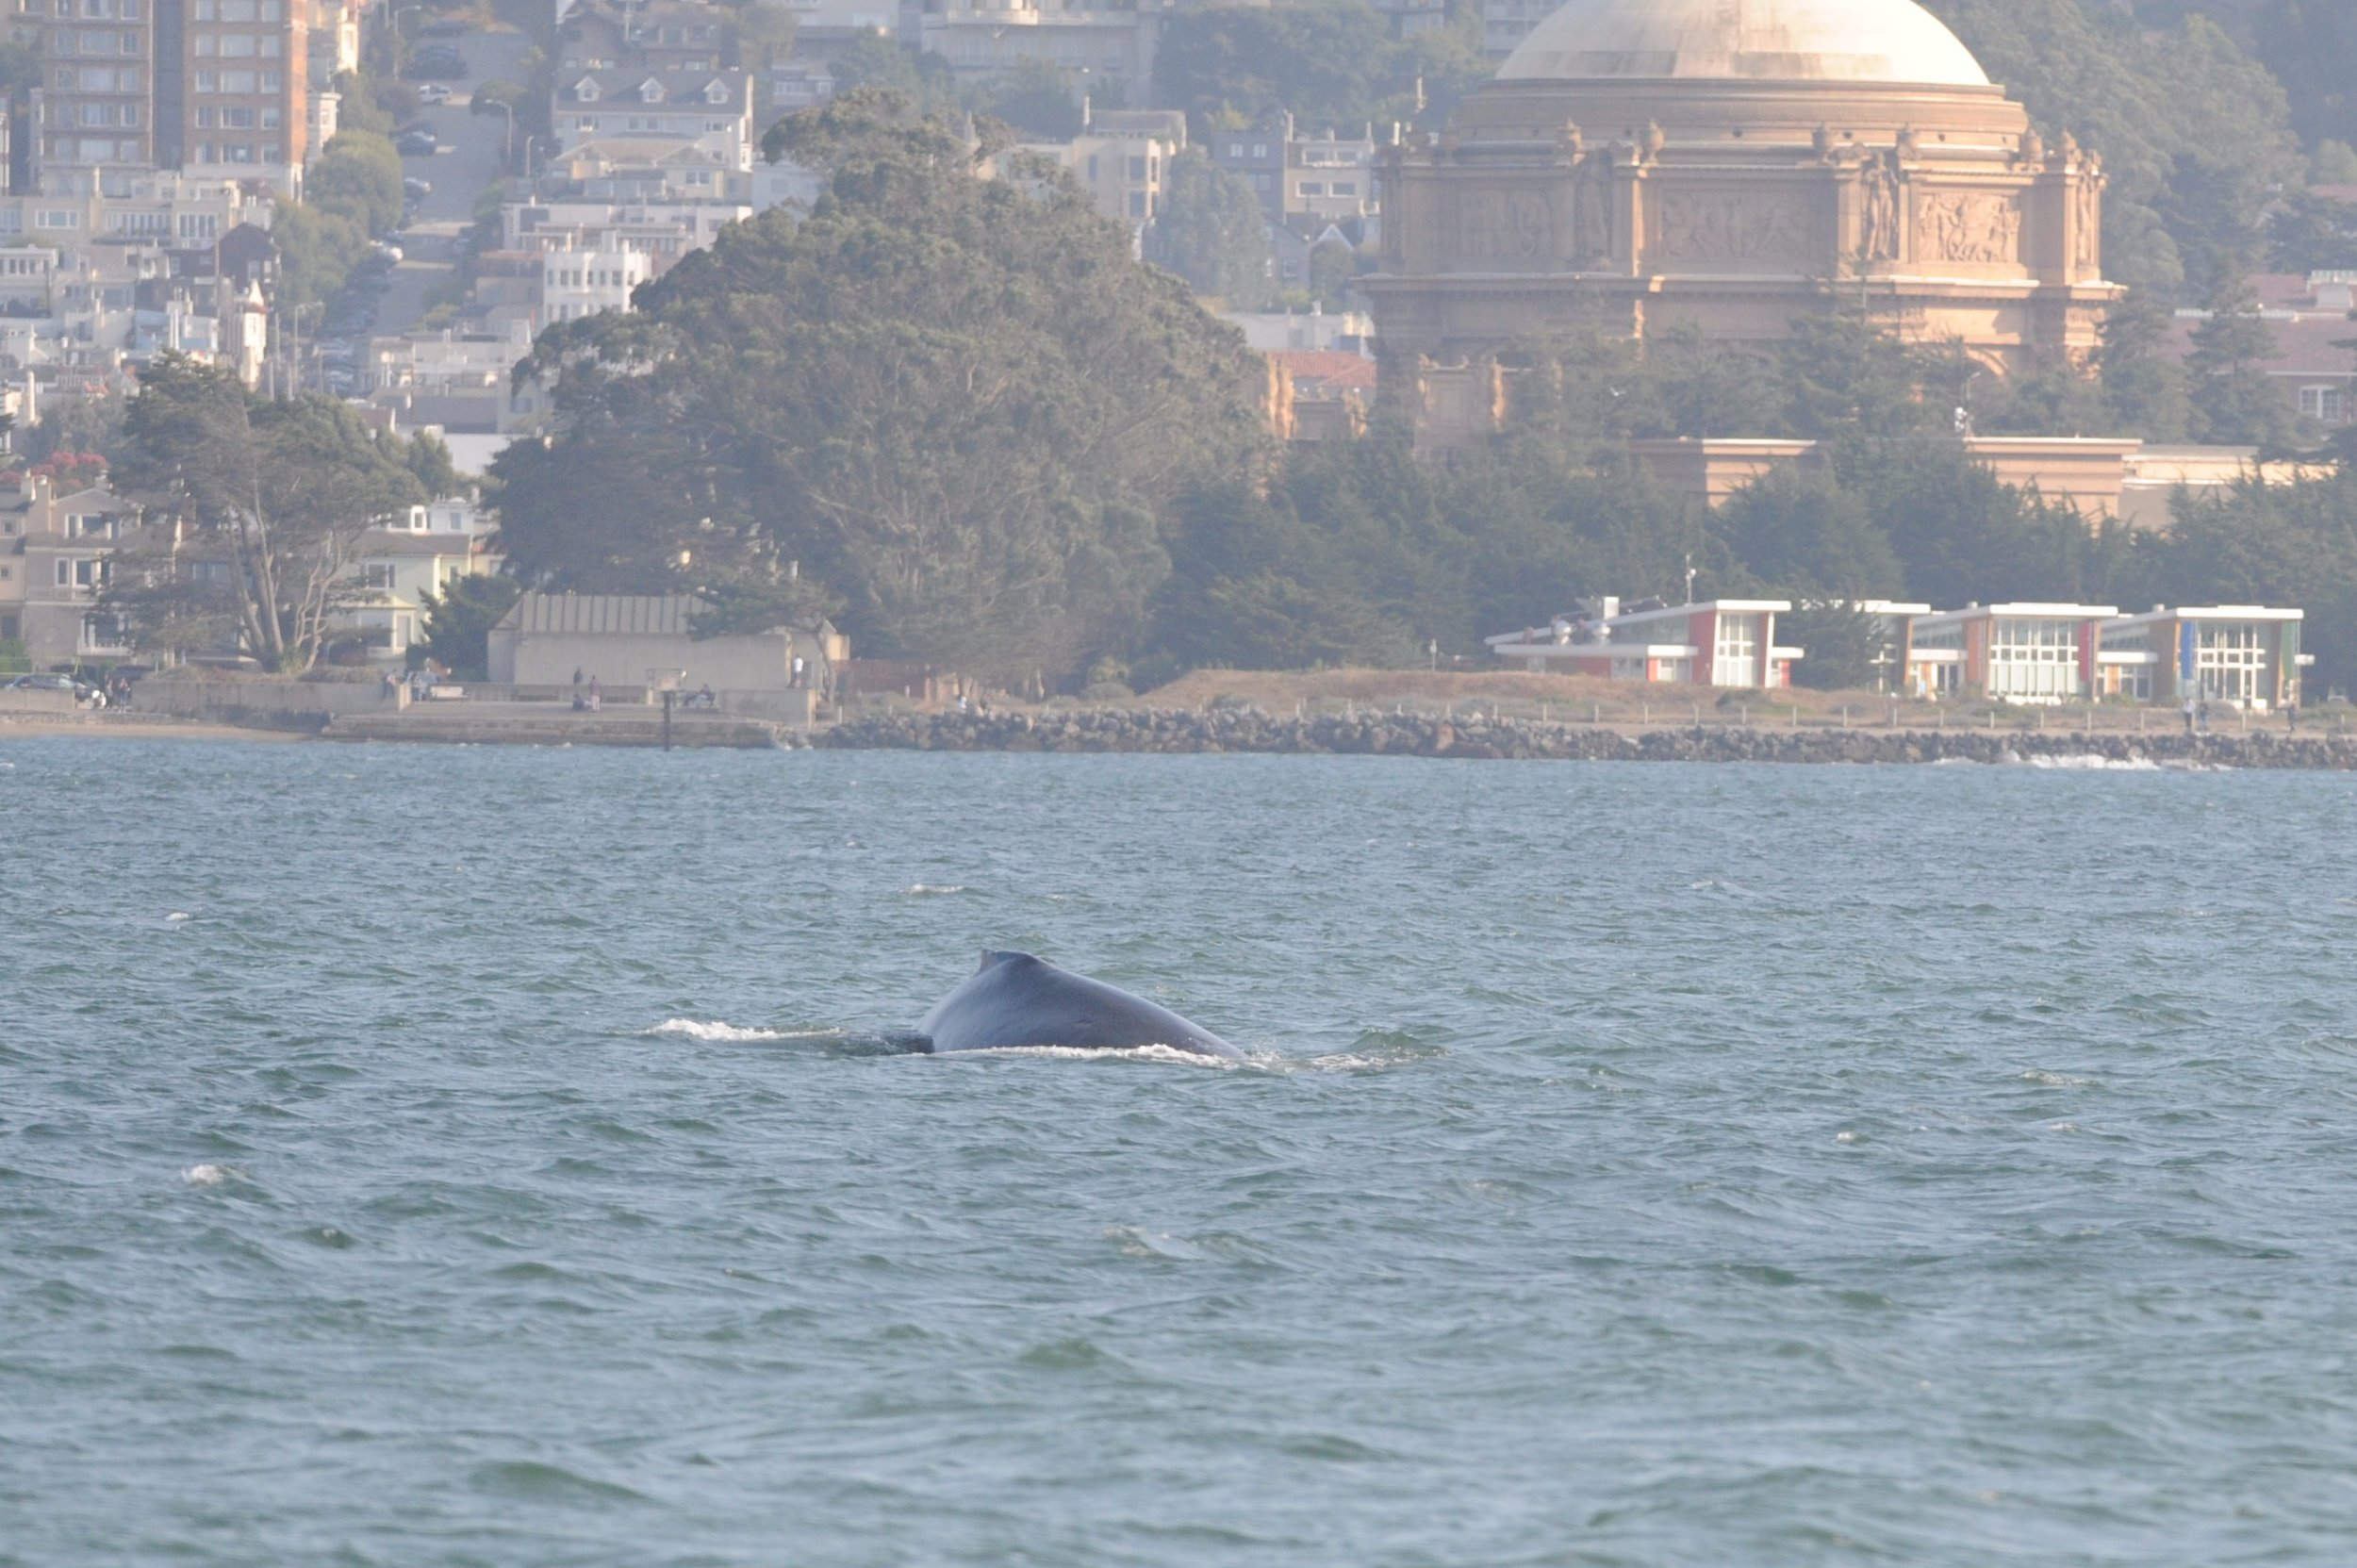 Whale surfacing near the Palace of Fine Arts.